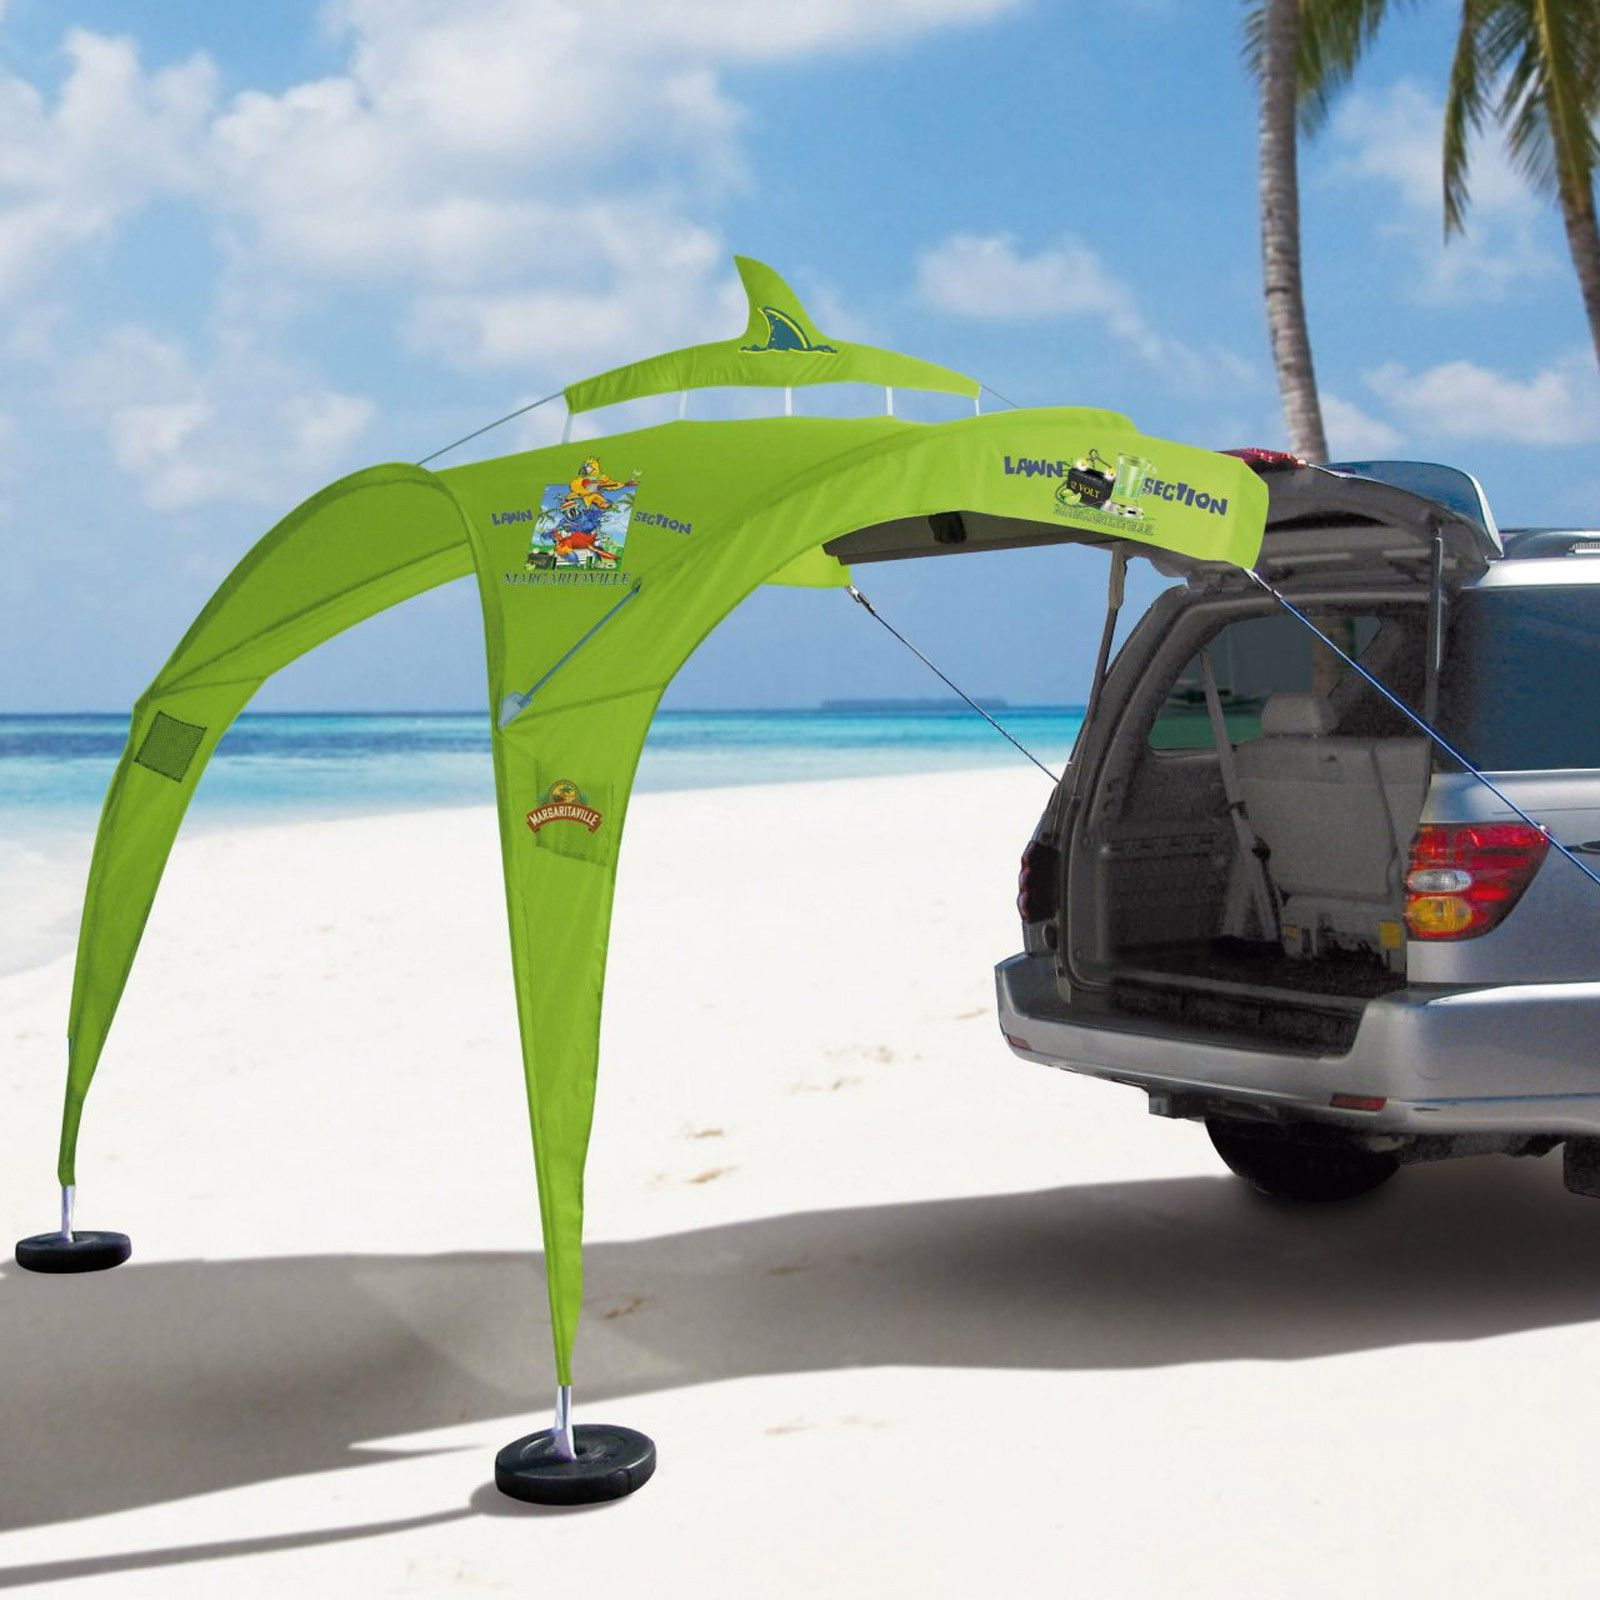 Check out this tailgating tent dream come true looks easy